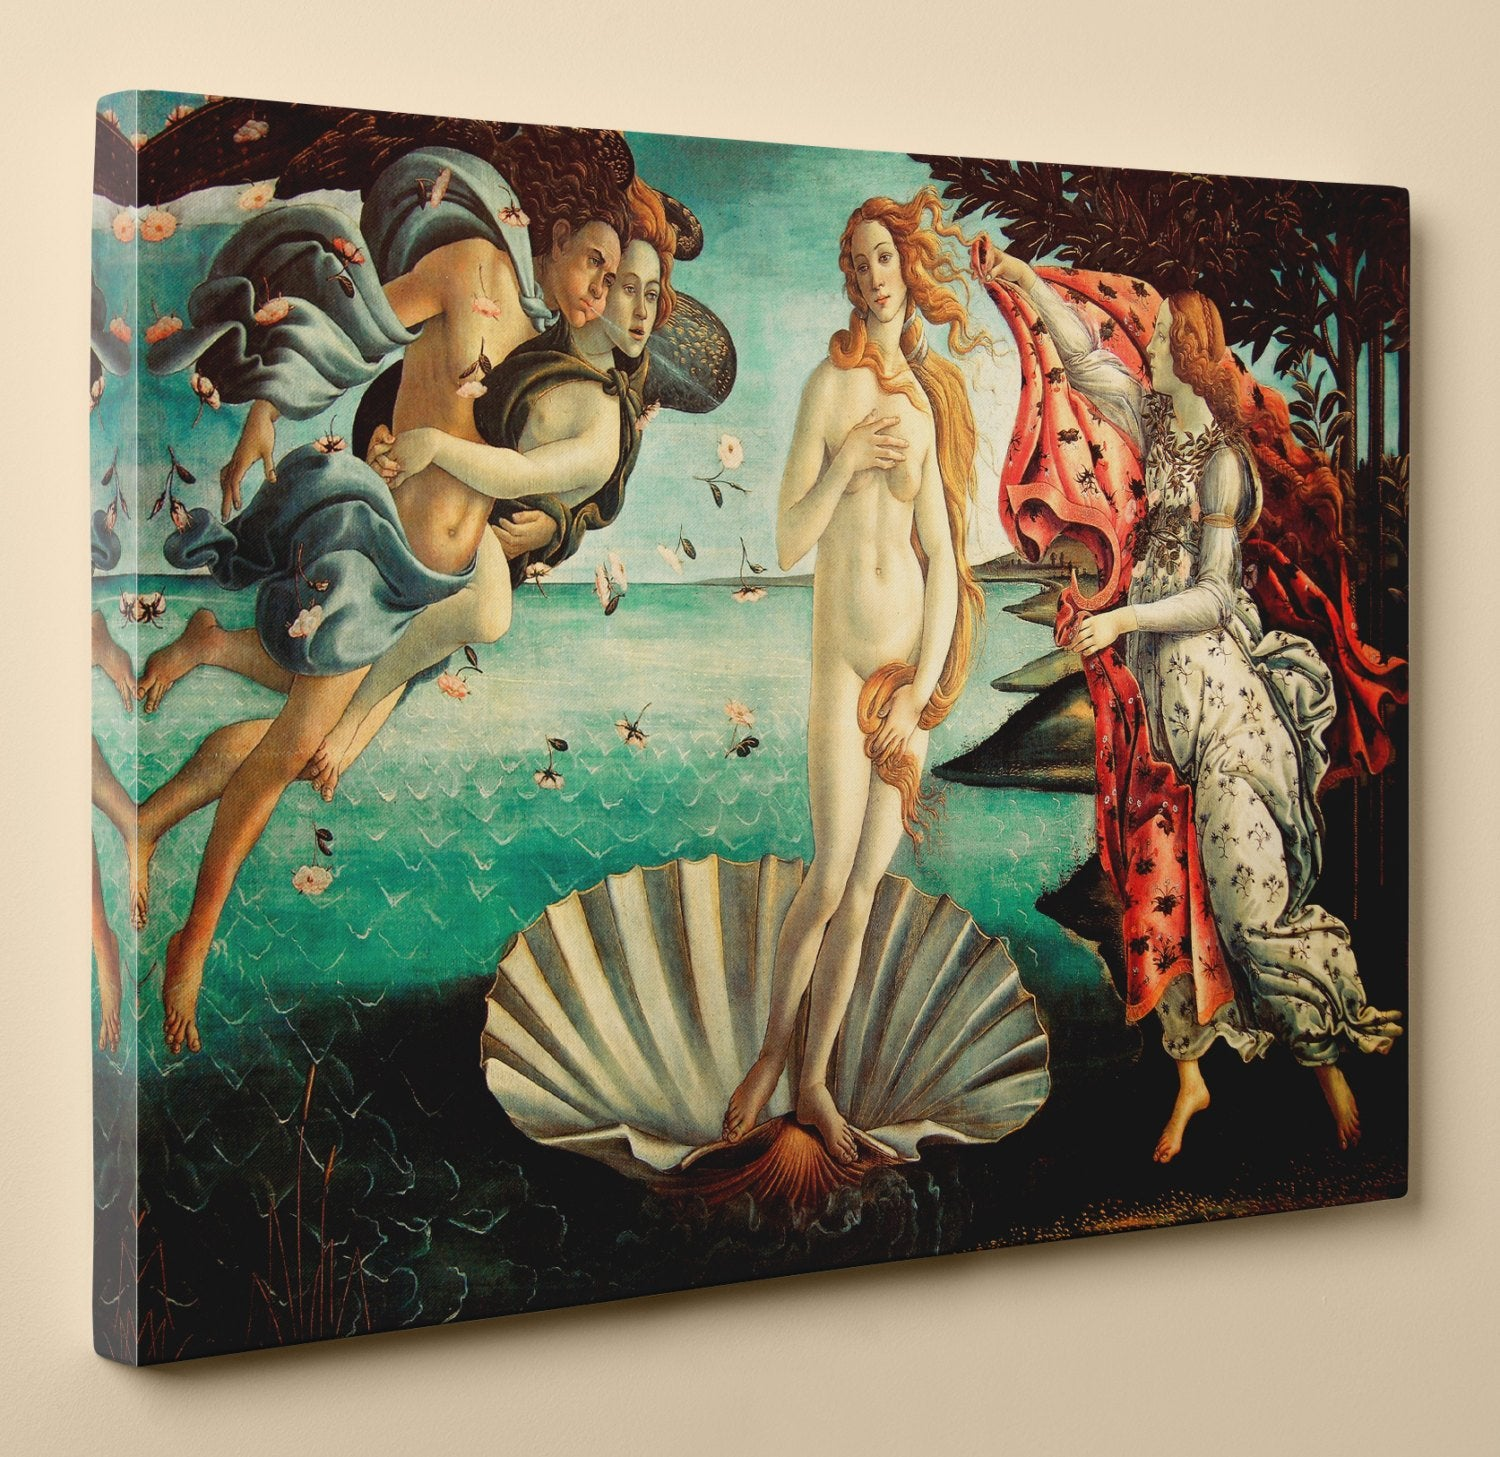 The Birth of Venus by Sandro Botticelli - Canvas Print, 18 by 12 Inch